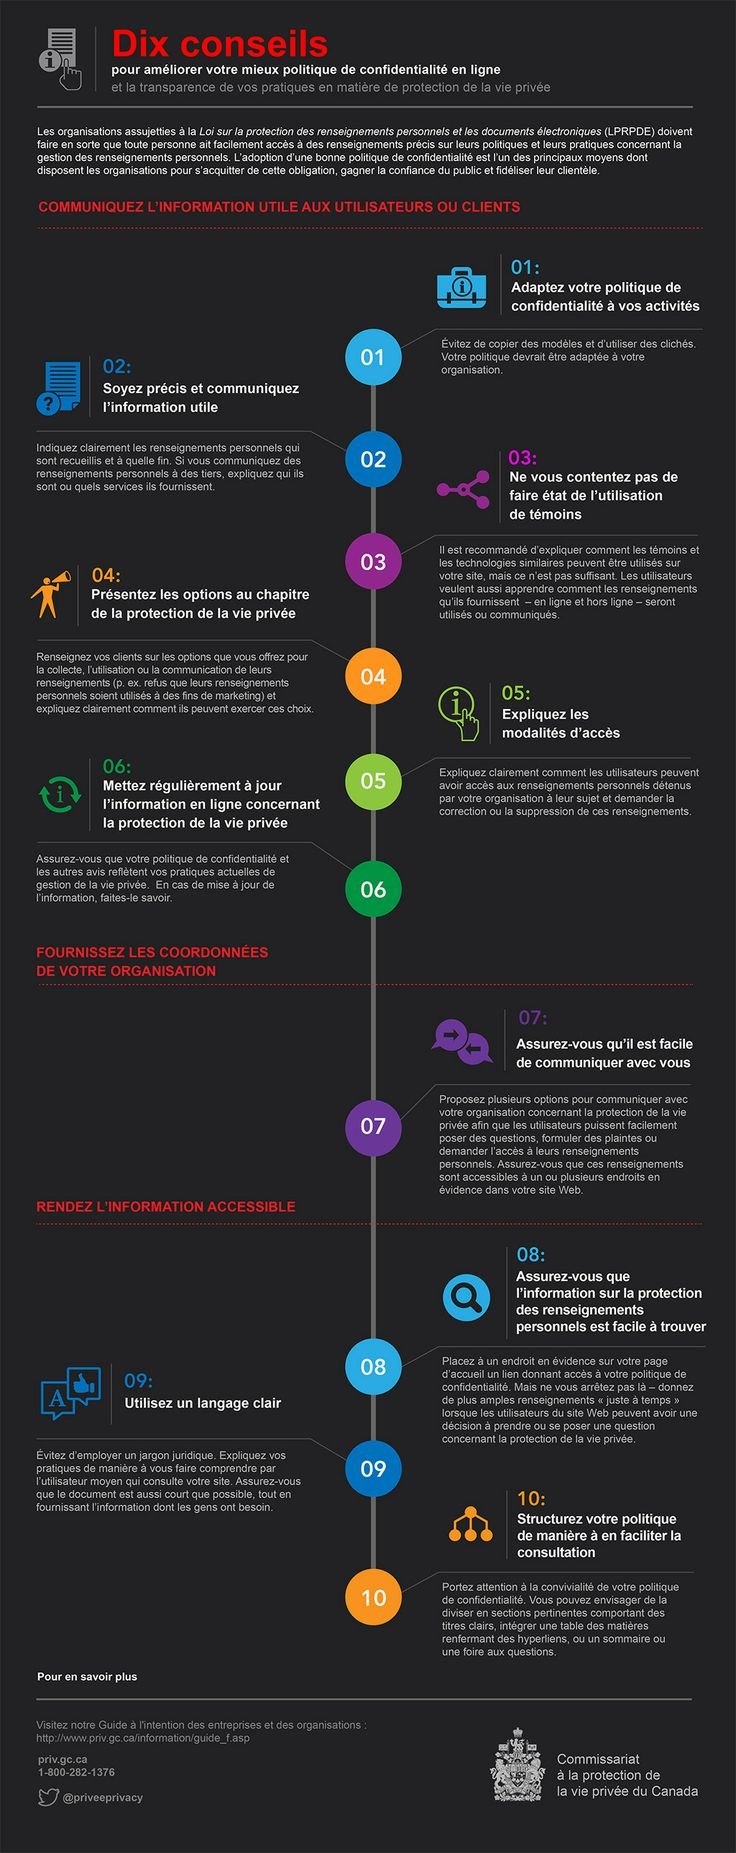 Privacy Commissioner of Canada: Infographic | www.hintongroup.com